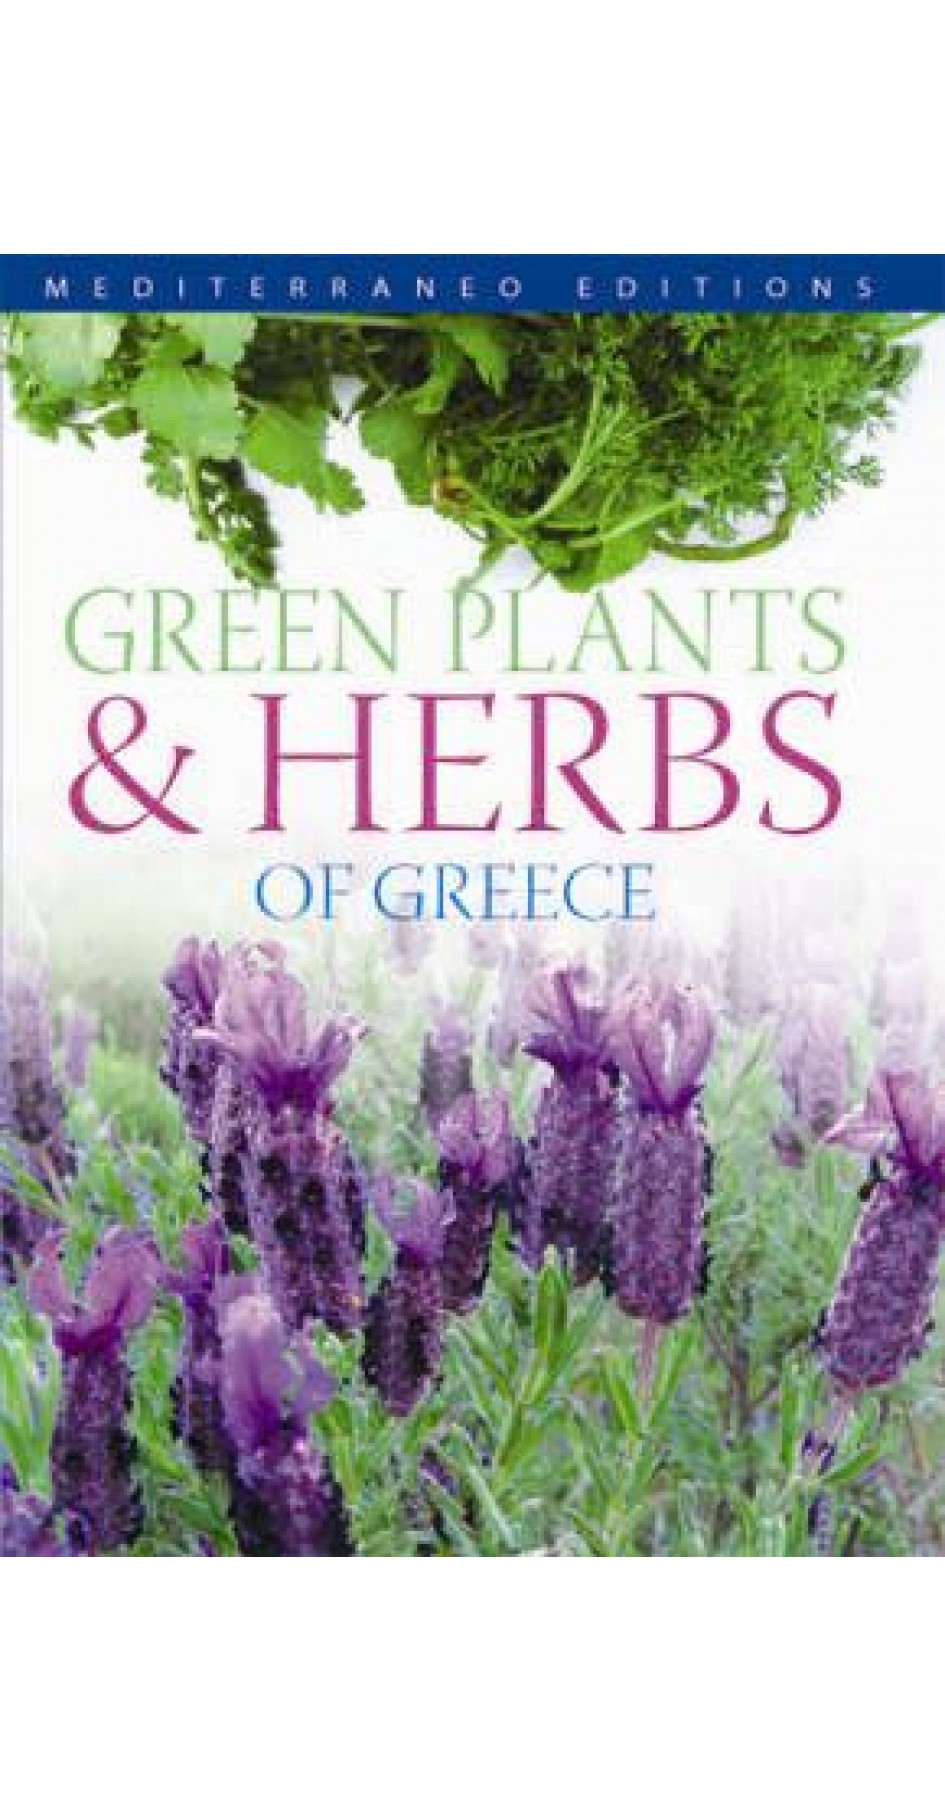 Green plants and herbs of Greece